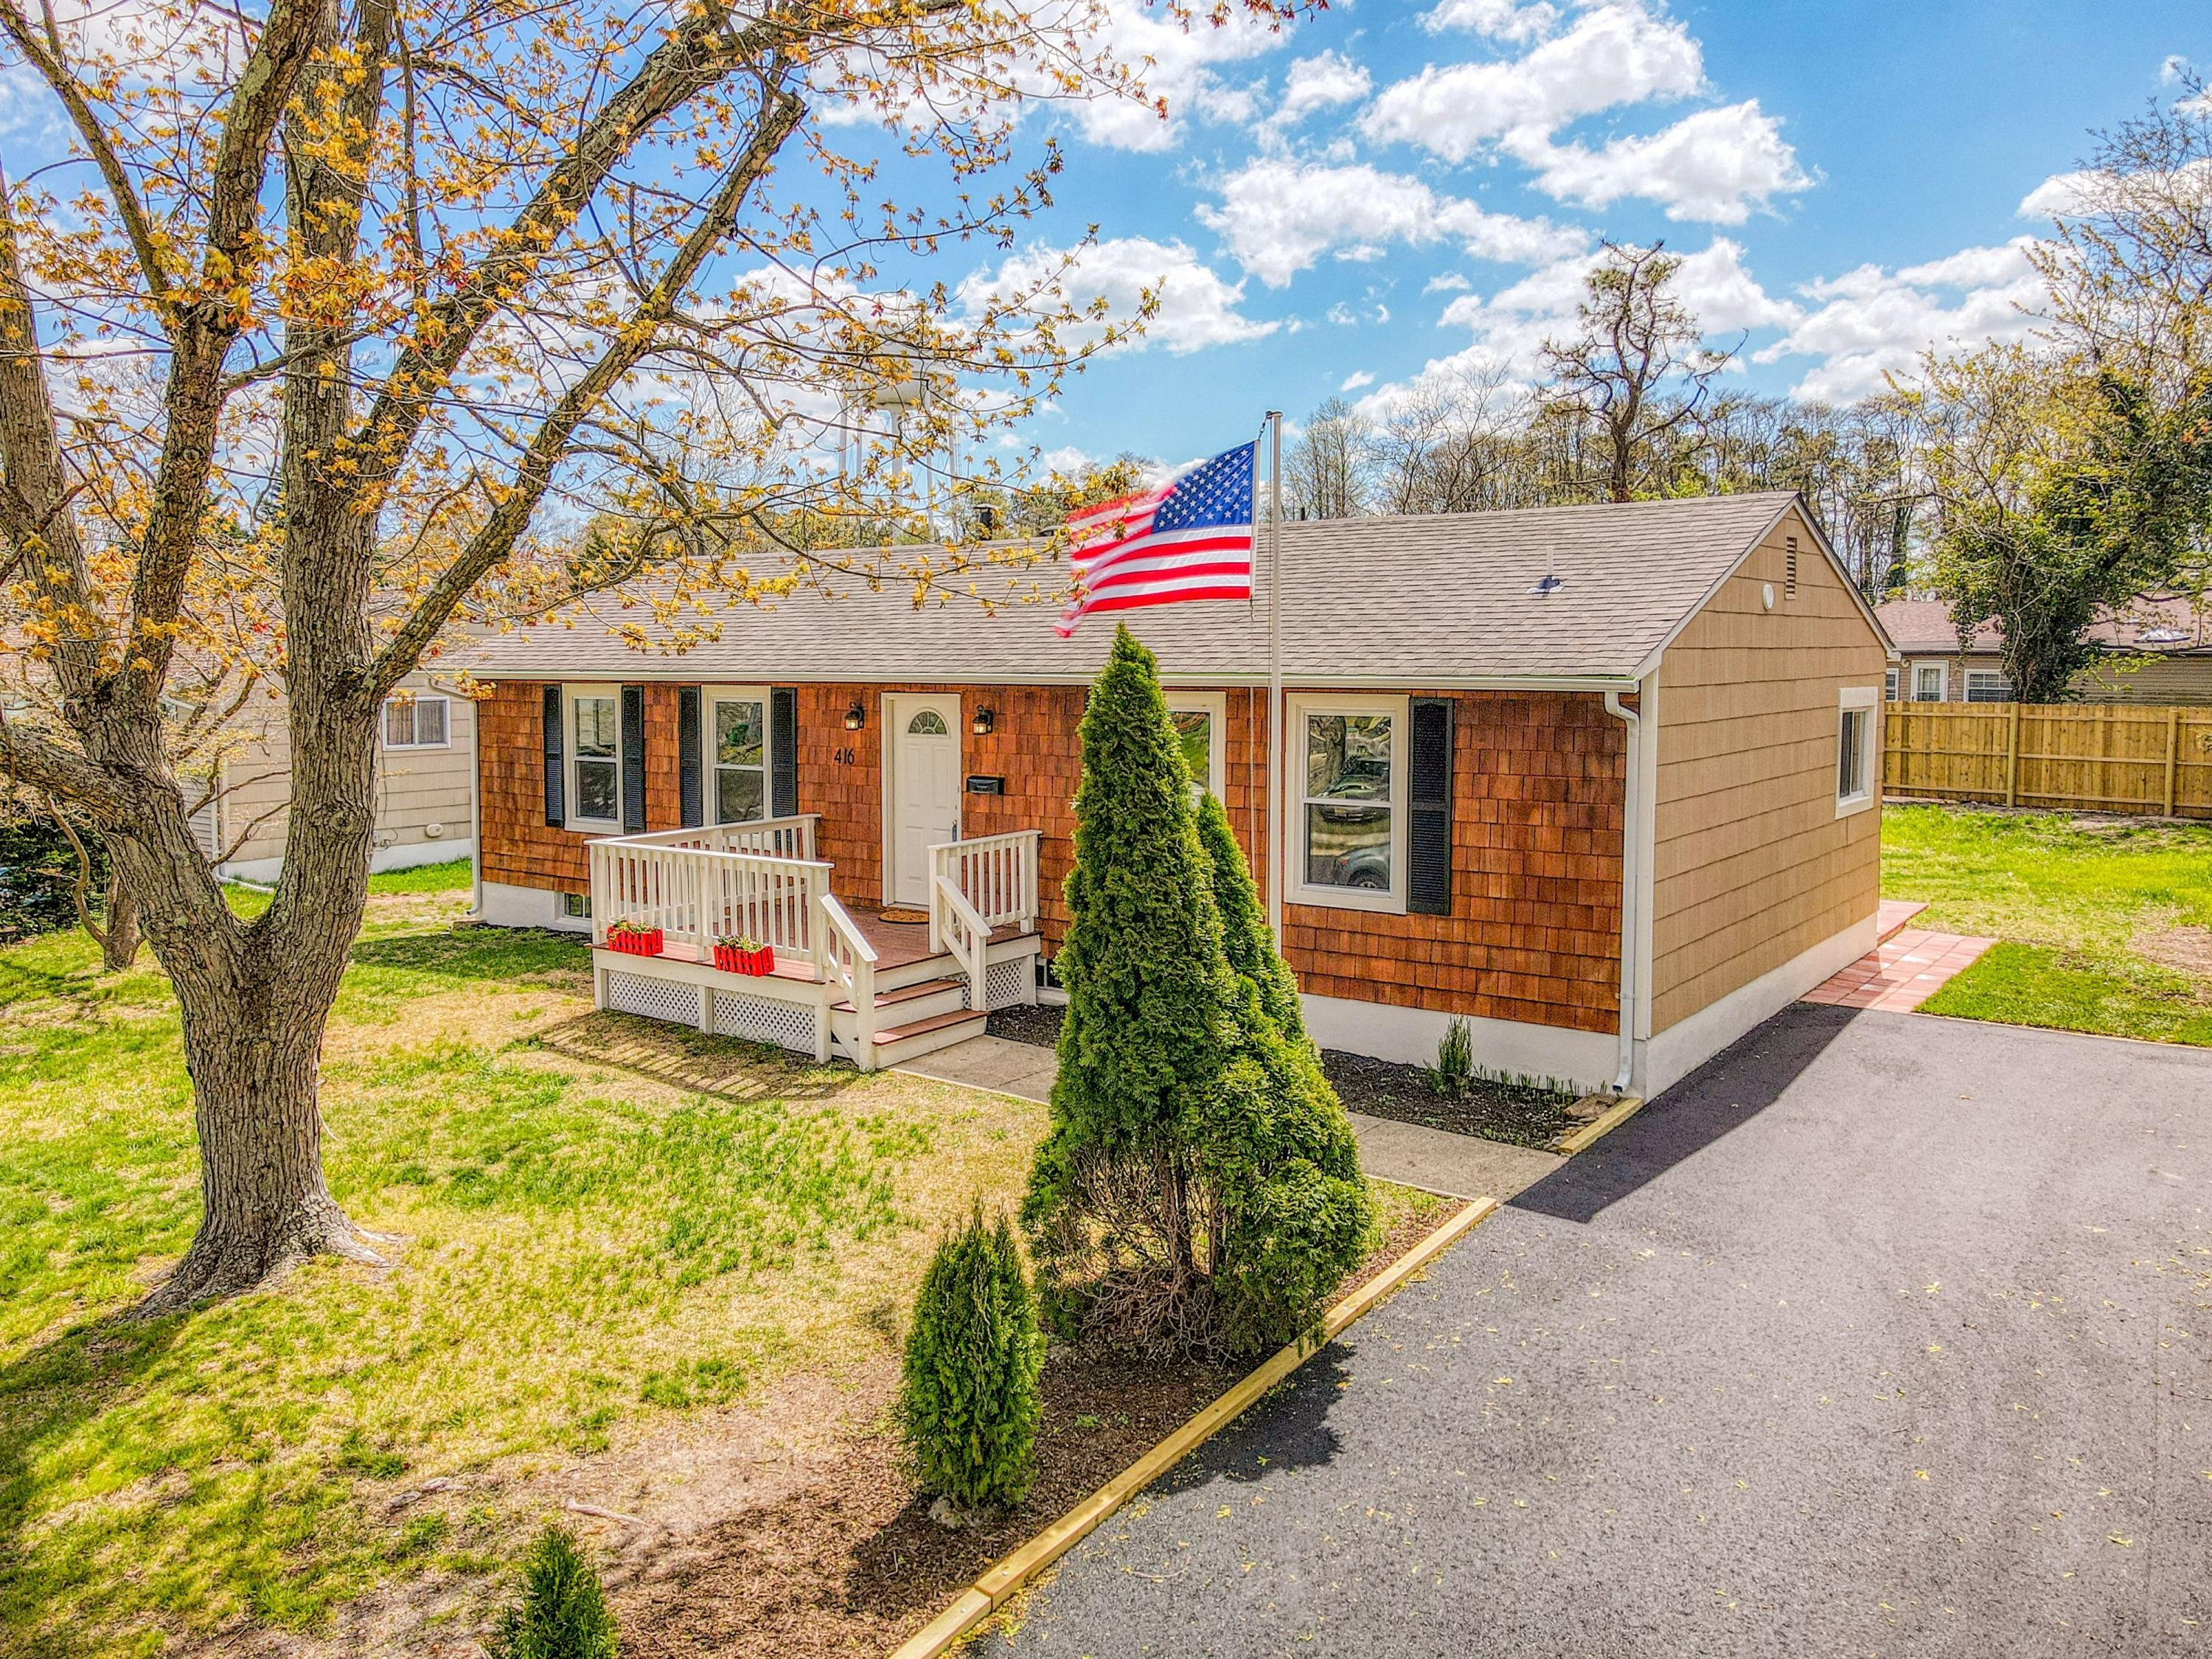 416 Chamberlain Street, Toms River, New Jersey 08757, 3 Bedrooms Bedrooms, ,2 BathroomsBathrooms,Single Family,For Sale,416 Chamberlain Street,1,22111737